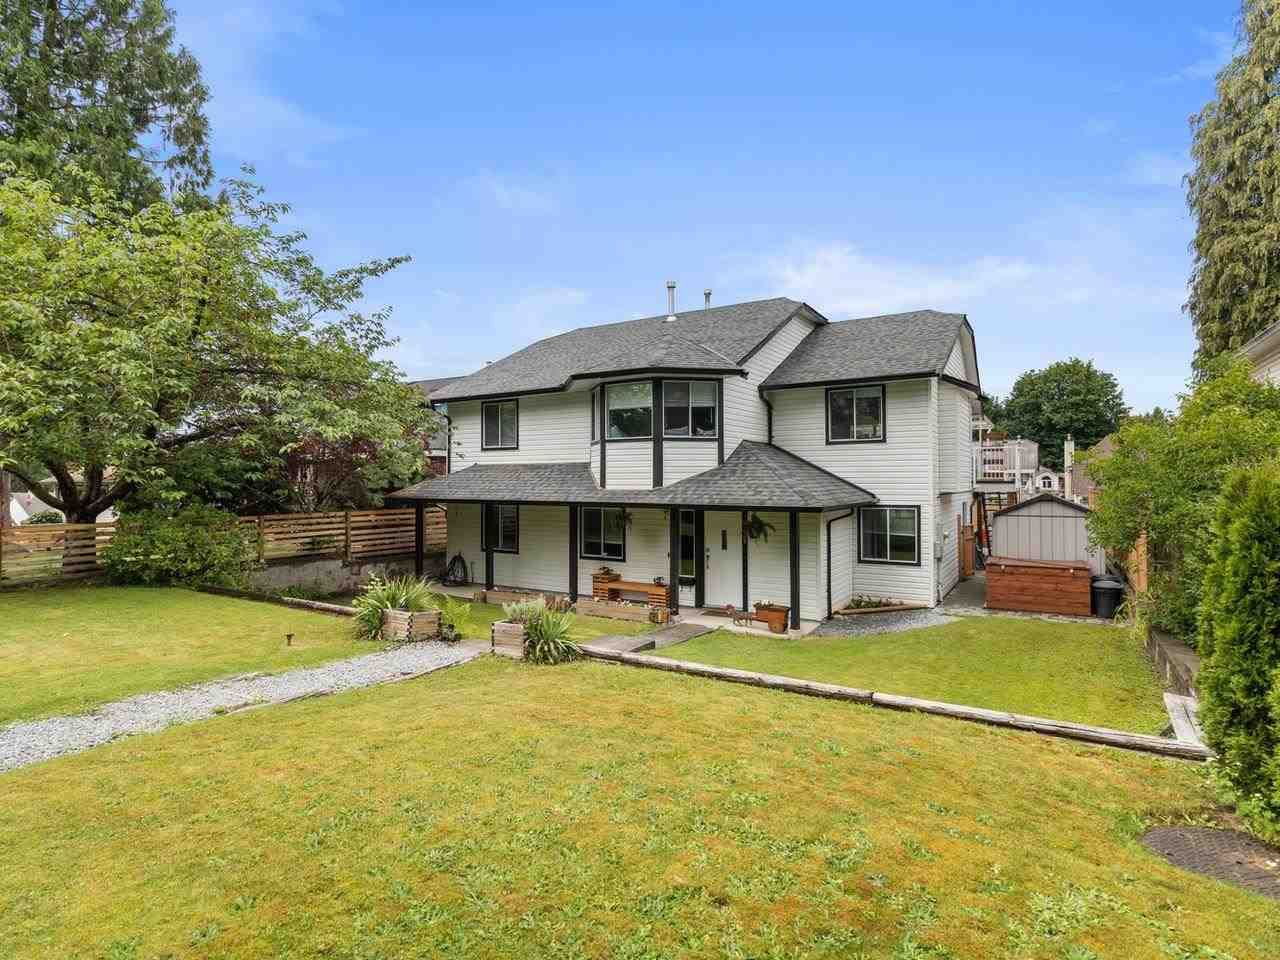 Main Photo: 23375 124 Avenue in Maple Ridge: East Central House for sale : MLS®# R2592625